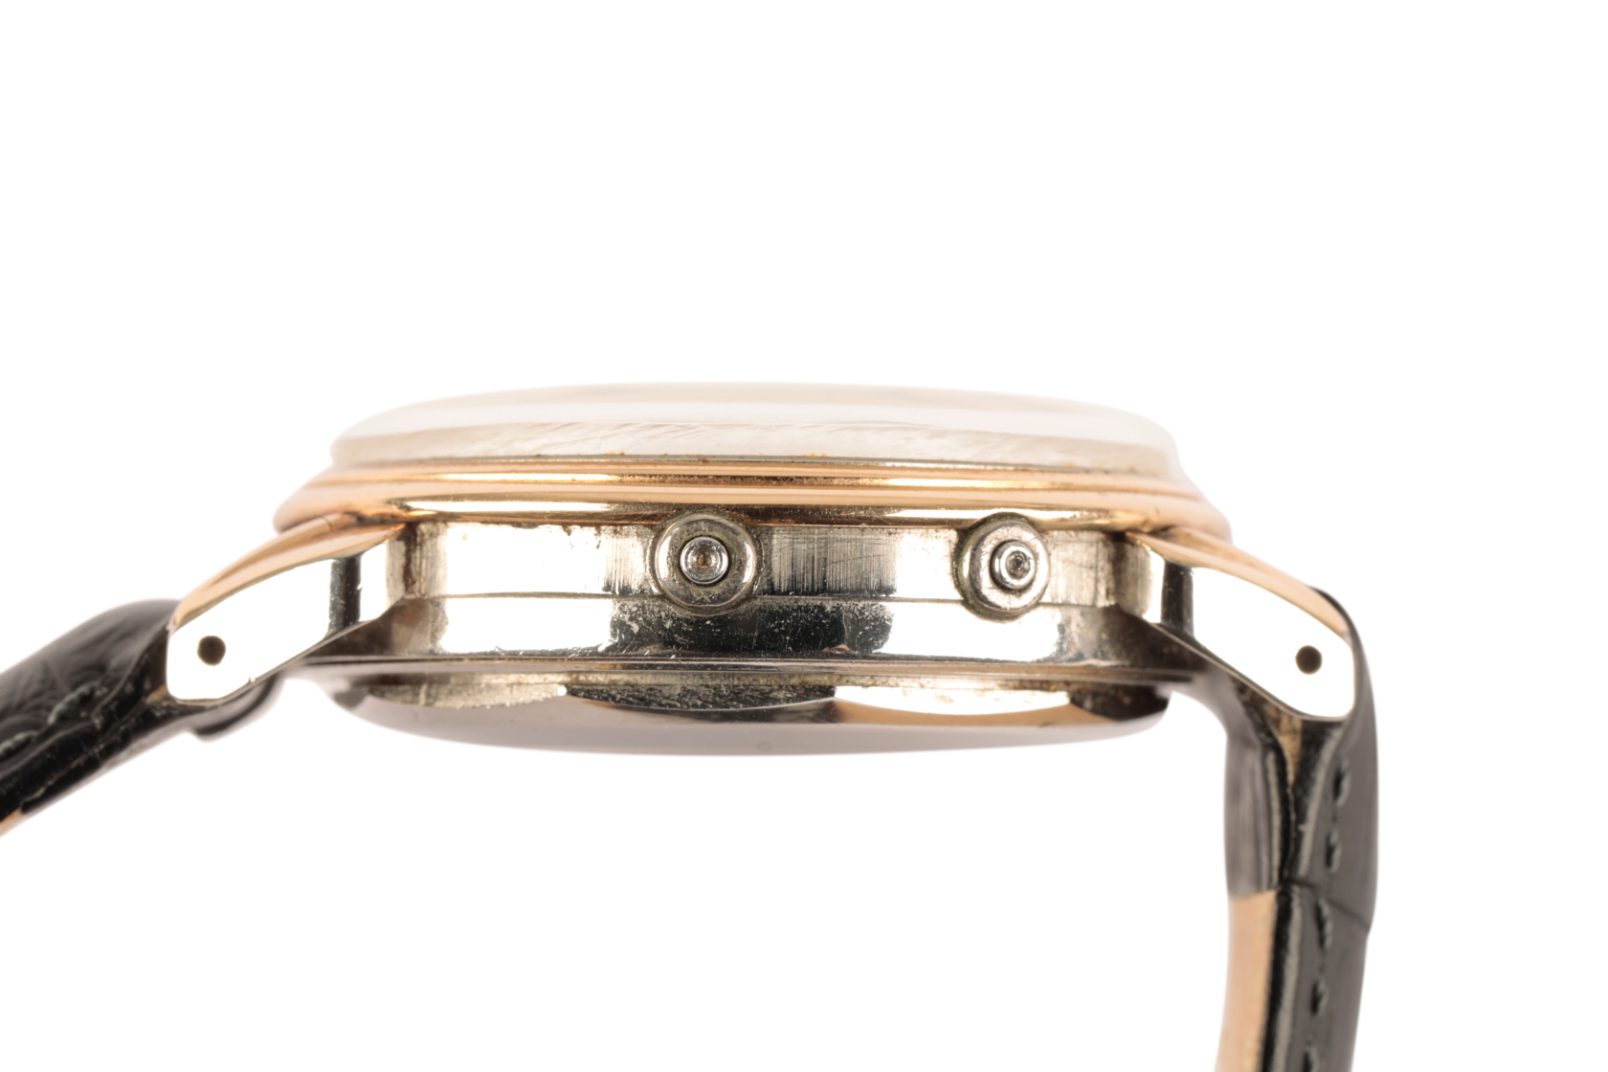 MOVADO CALENDOMATIC SPORT GENTLEMAN'S STAINLESS STEEL & GOLD PLATED WRIST WATCH - Image 6 of 7